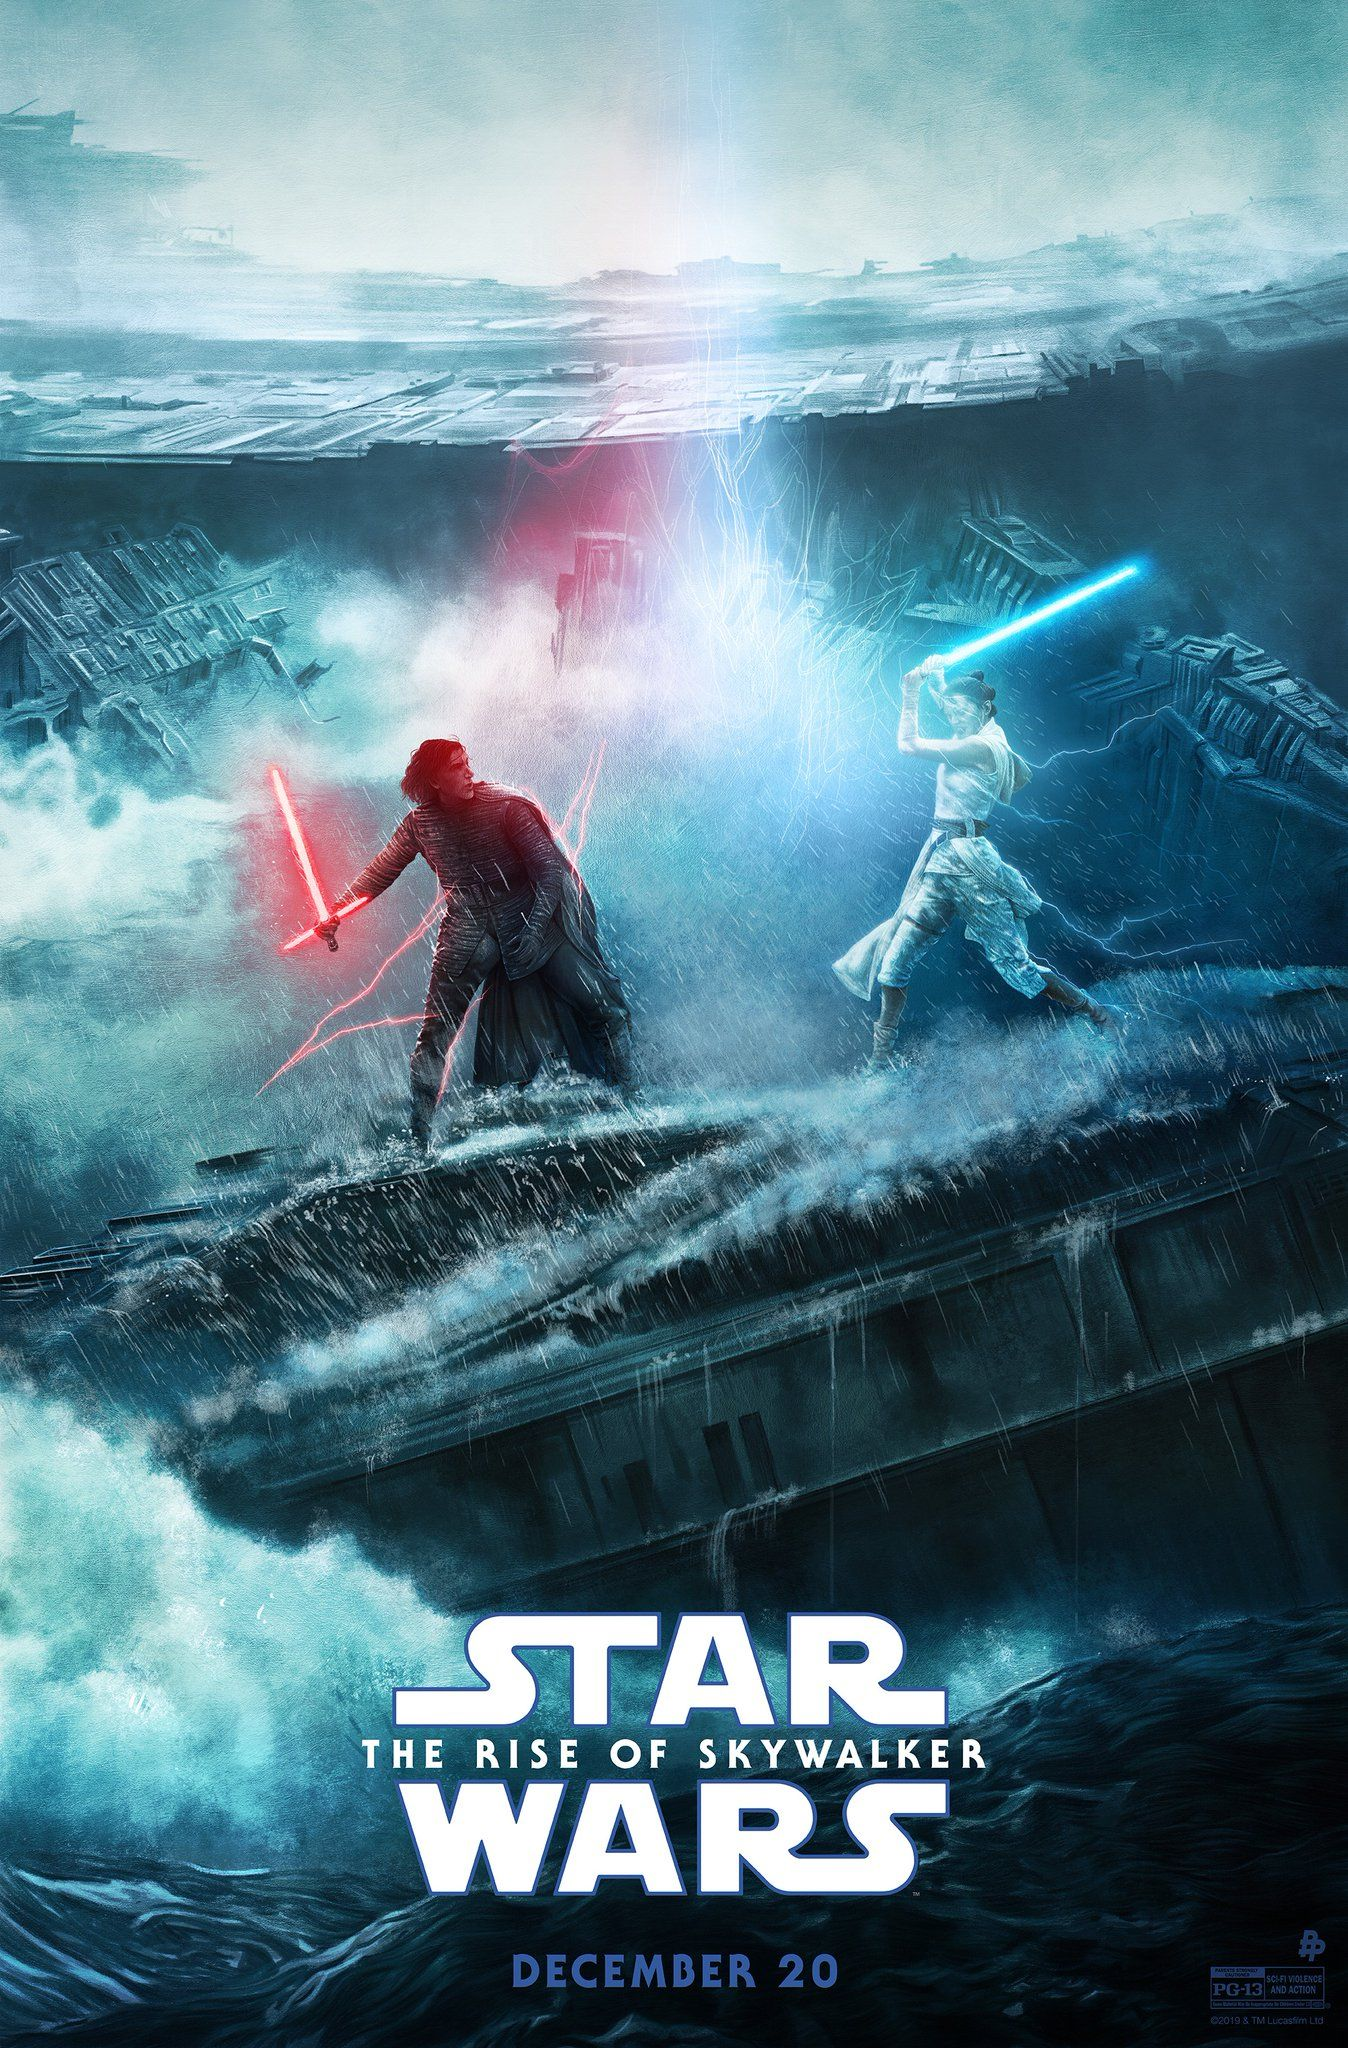 Pin By Ignacio Quintana On Movies Imdb Star Wars Movies Posters Star Wars Poster Star Wars Film